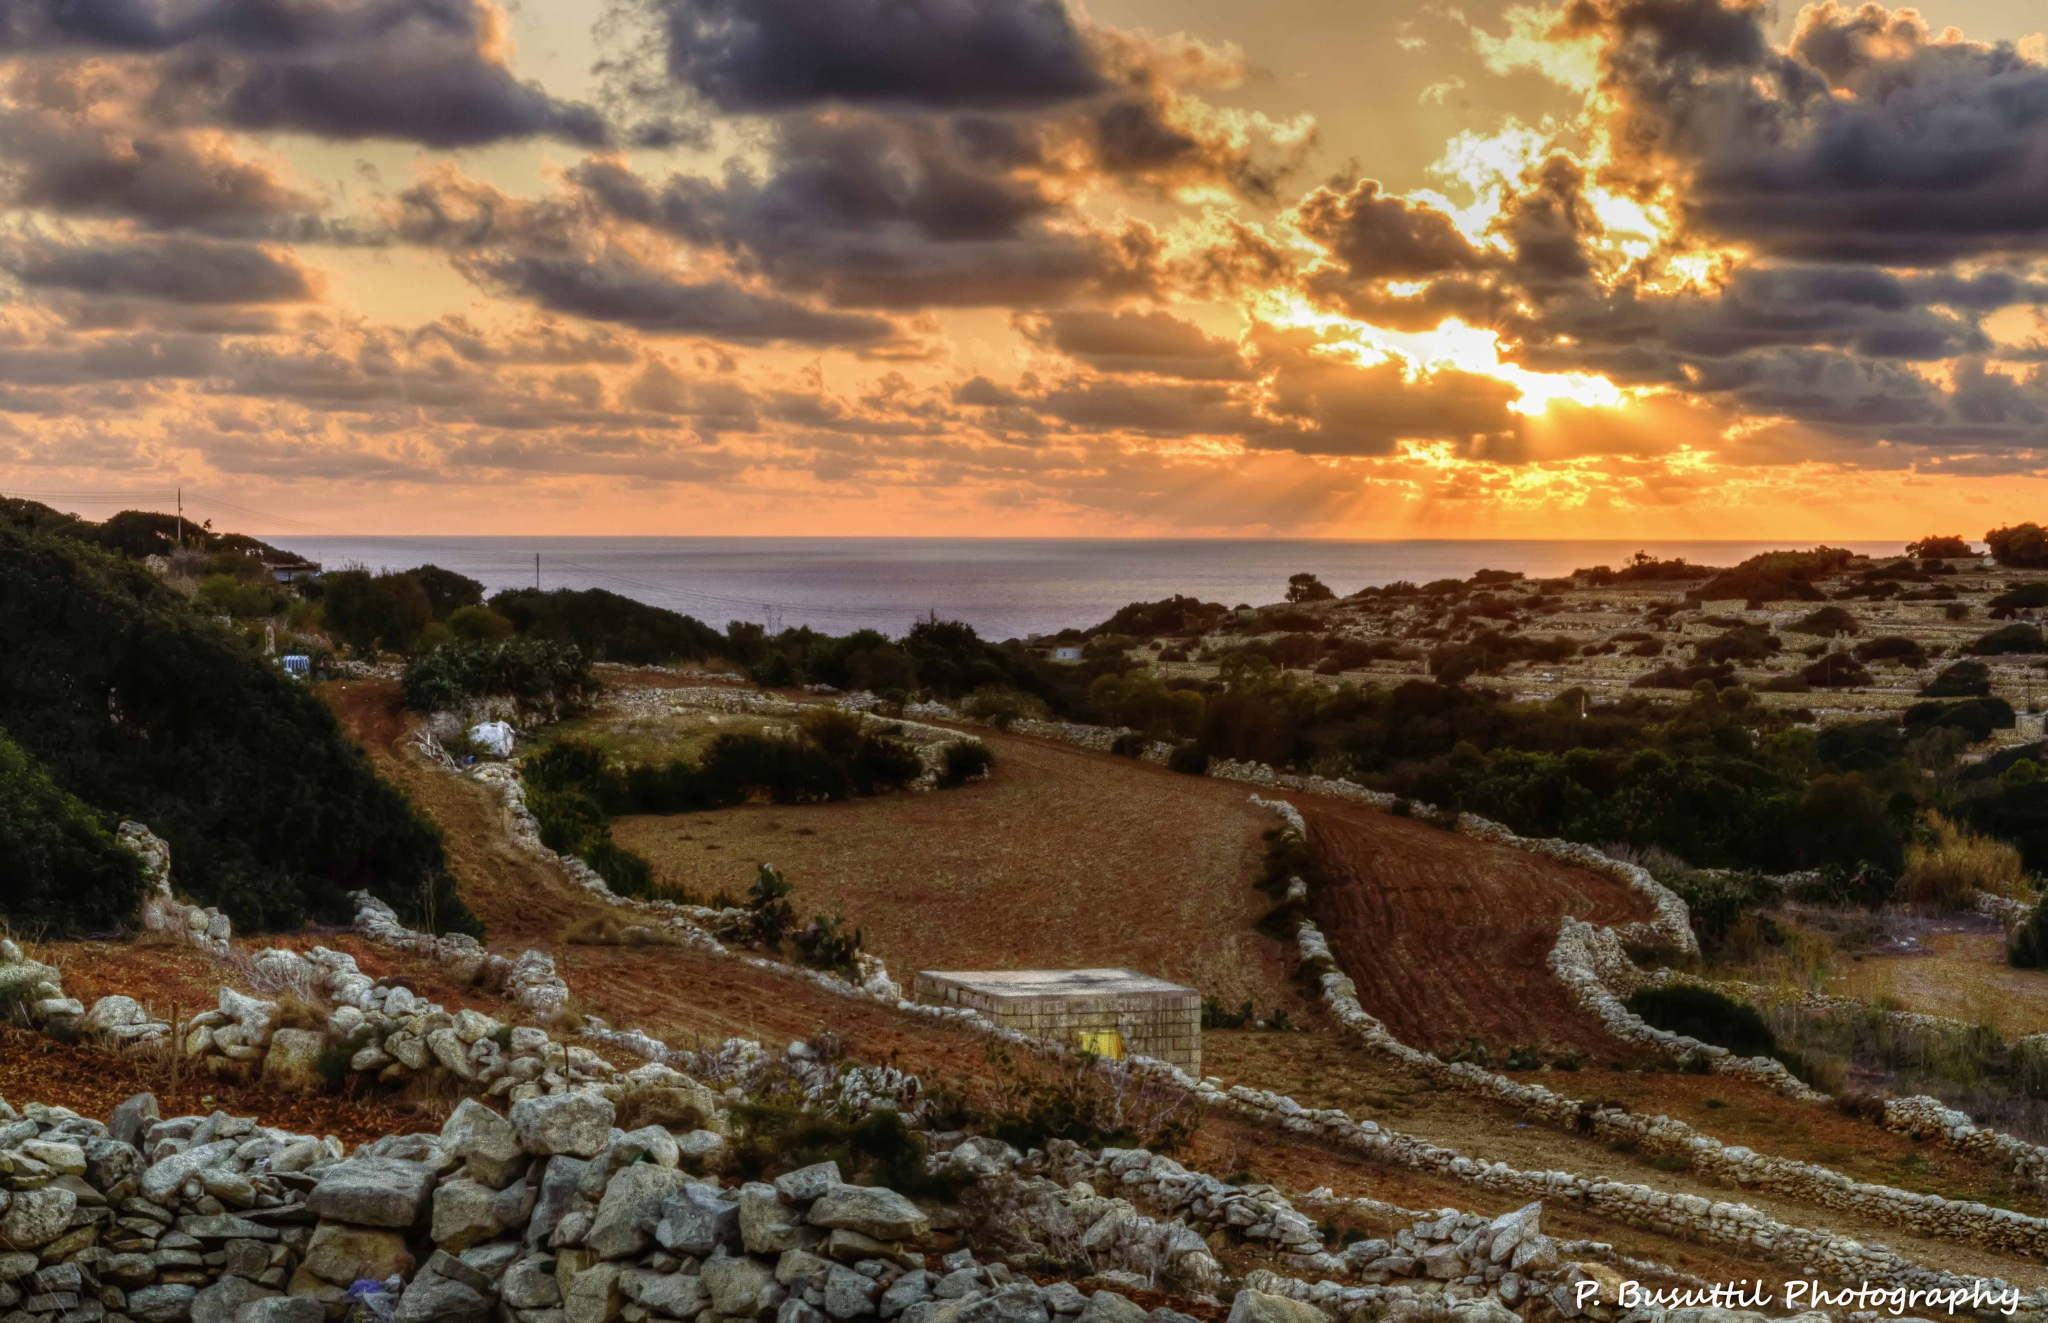 The end of the day by peter.busuttil